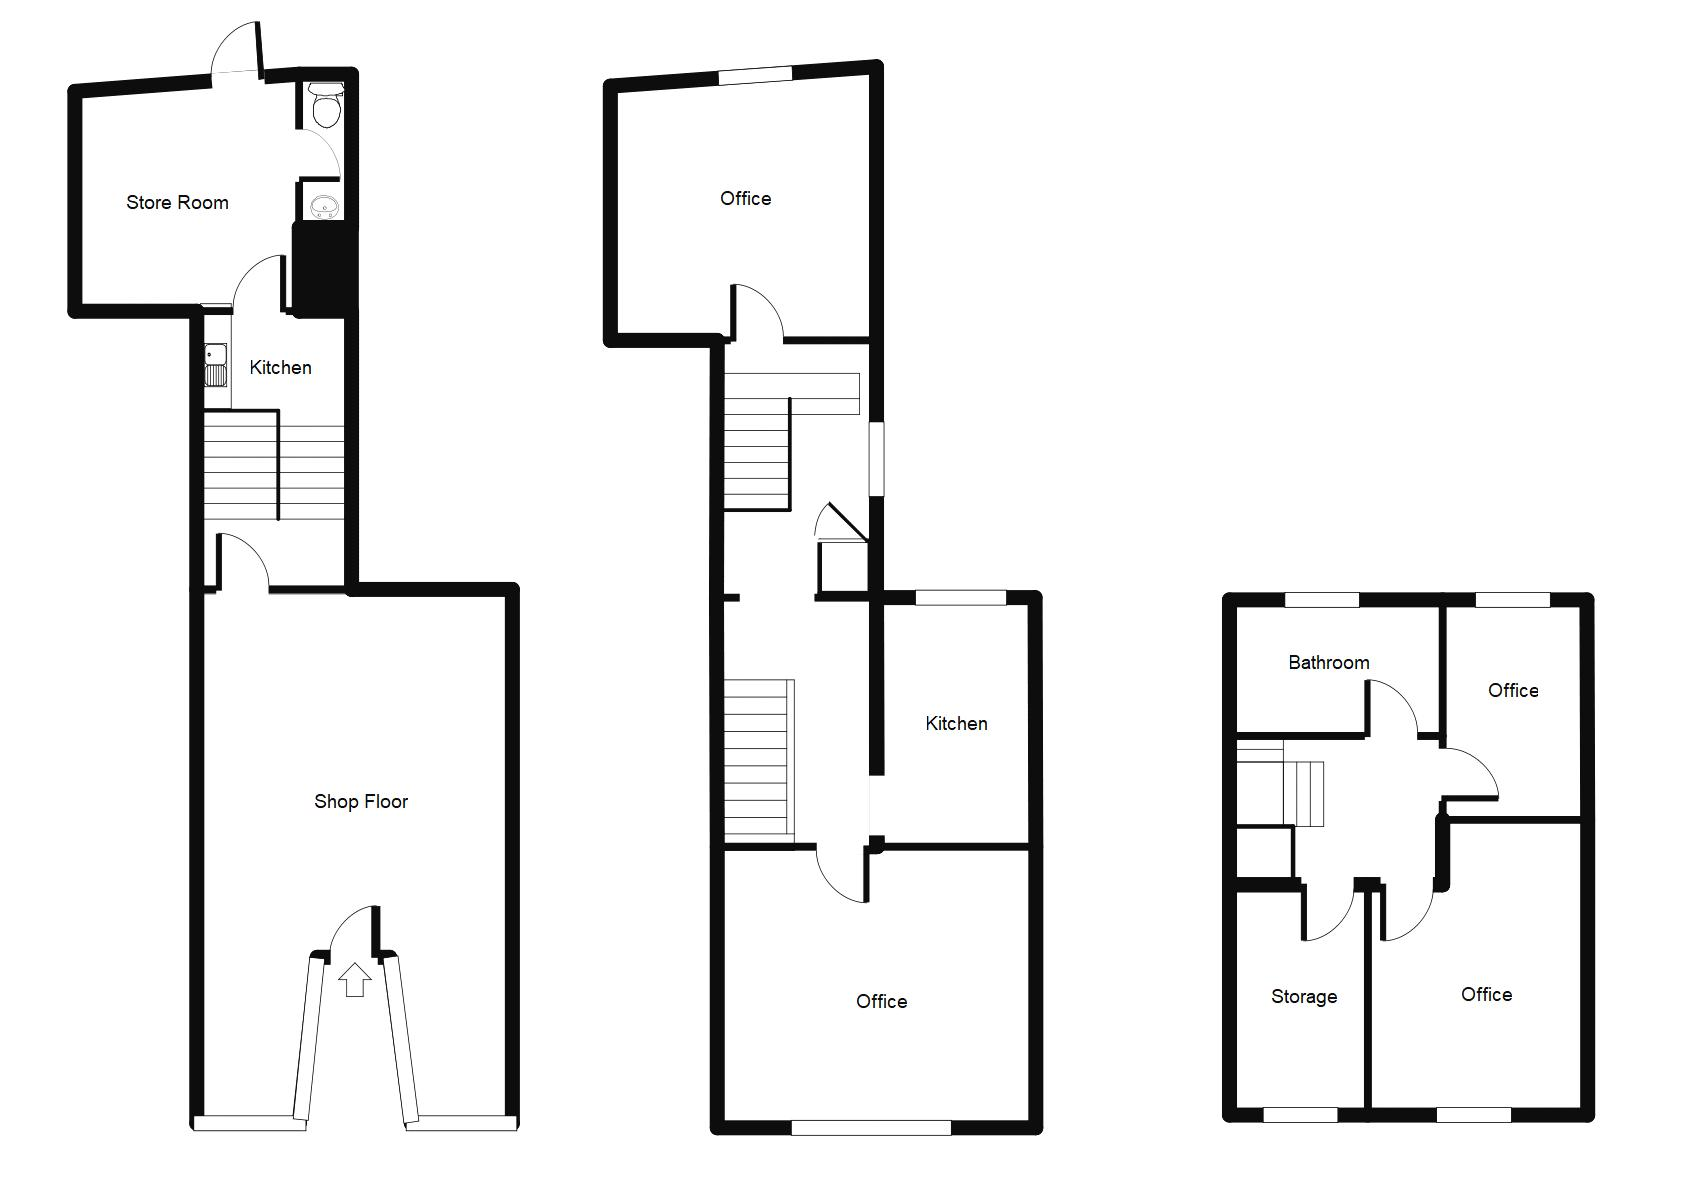 35 High Street, Denbigh Floorplan Upload